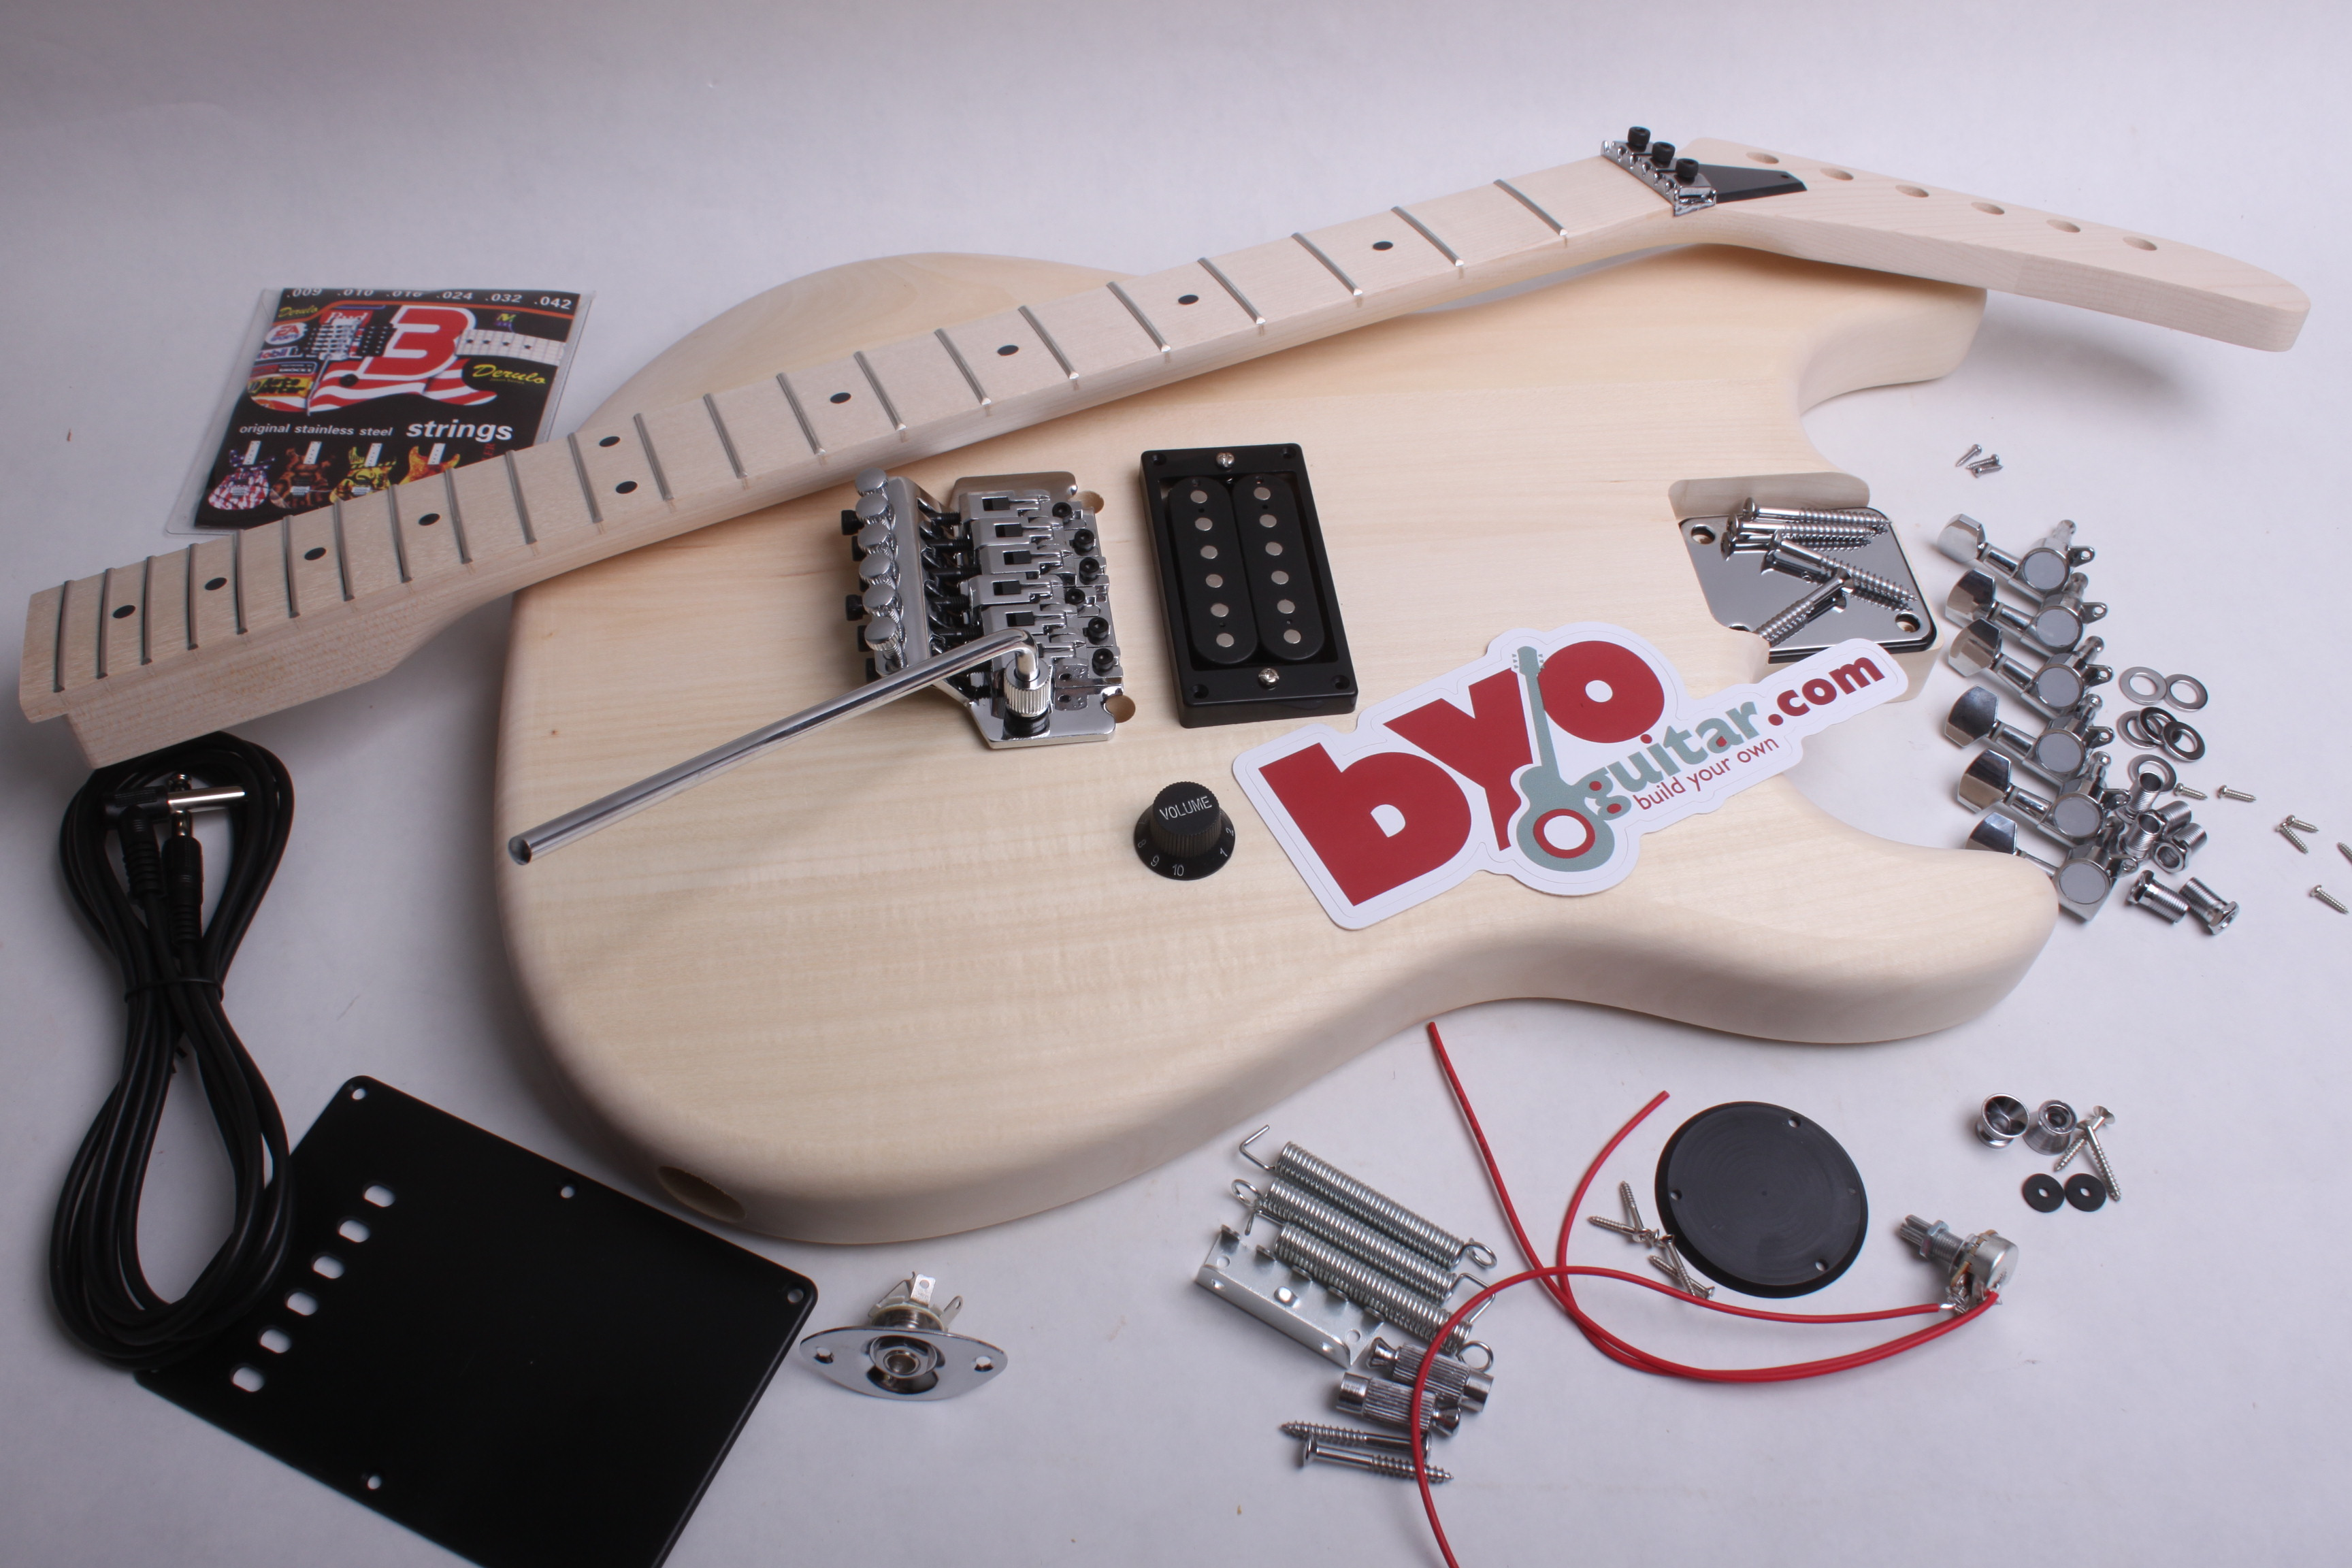 electric guitar kit rg style guitar bodies and kits from byoguitar. Black Bedroom Furniture Sets. Home Design Ideas